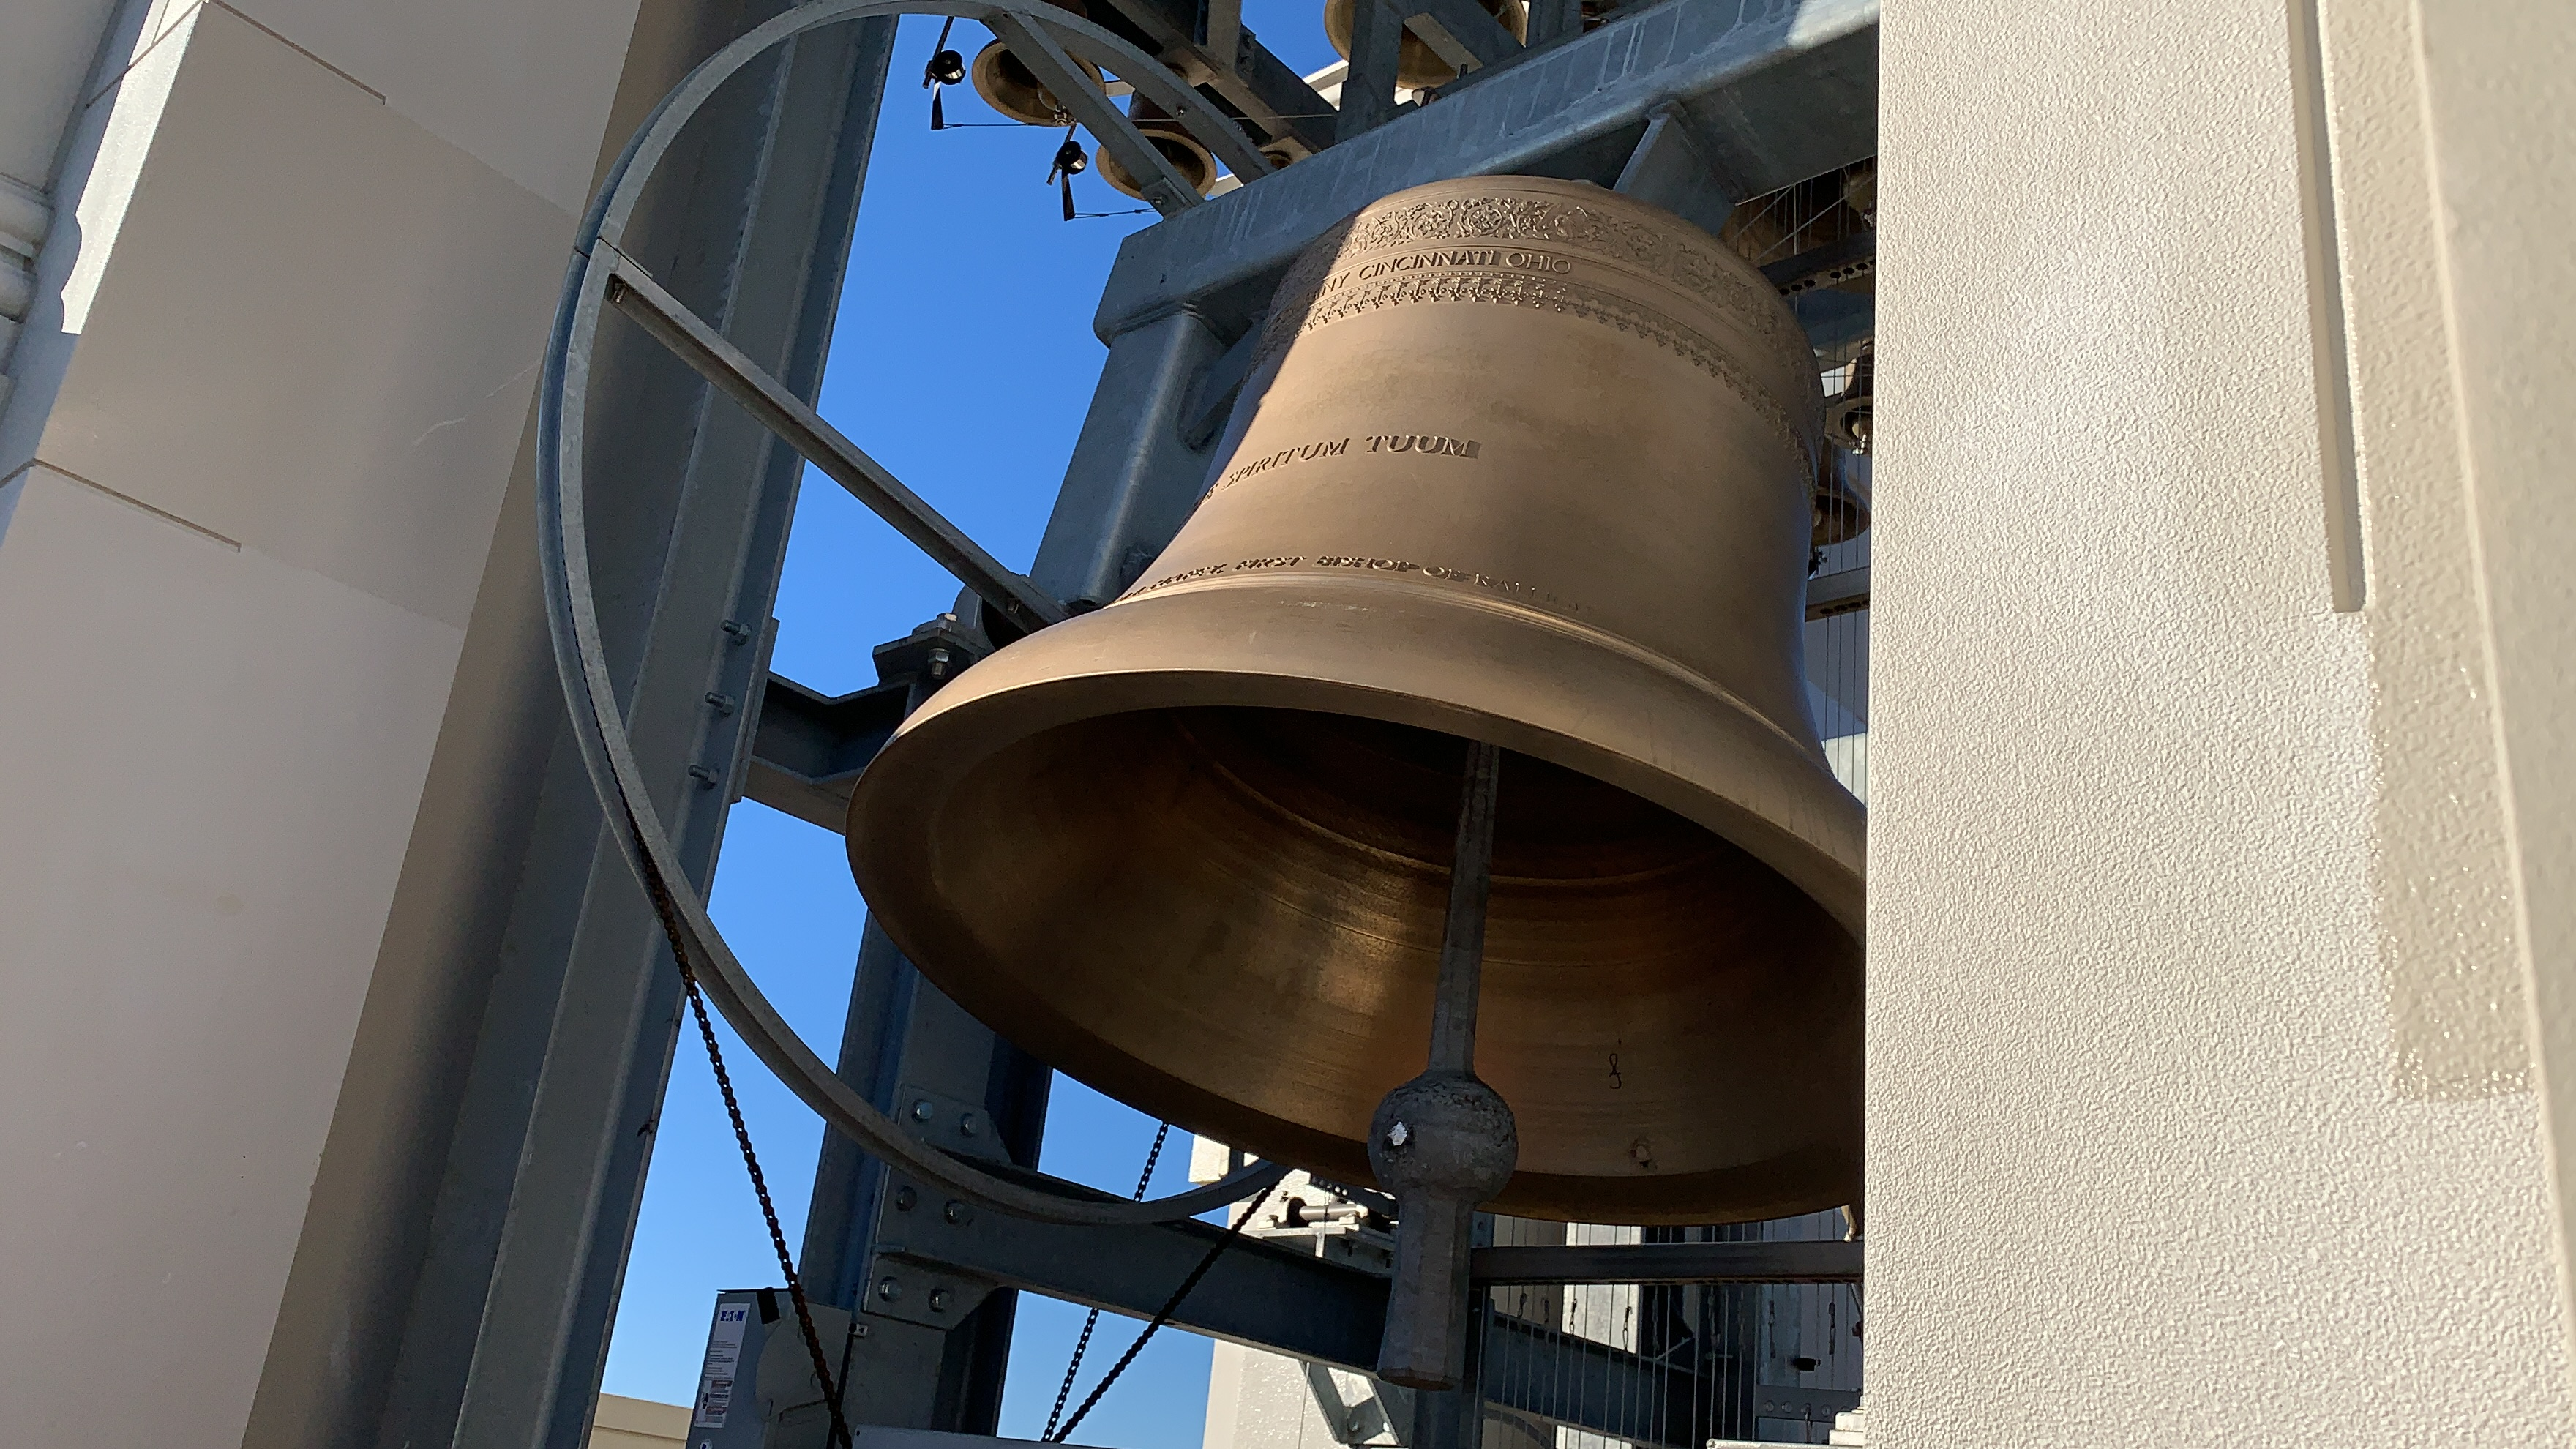 <div class='meta'><div class='origin-logo' data-origin='WTVD'></div><span class='caption-text' data-credit='Credit: Julie Wilson'>The bells on top of Holy Name of Jesus Cathedral can be heard roughly one mile away</span></div>